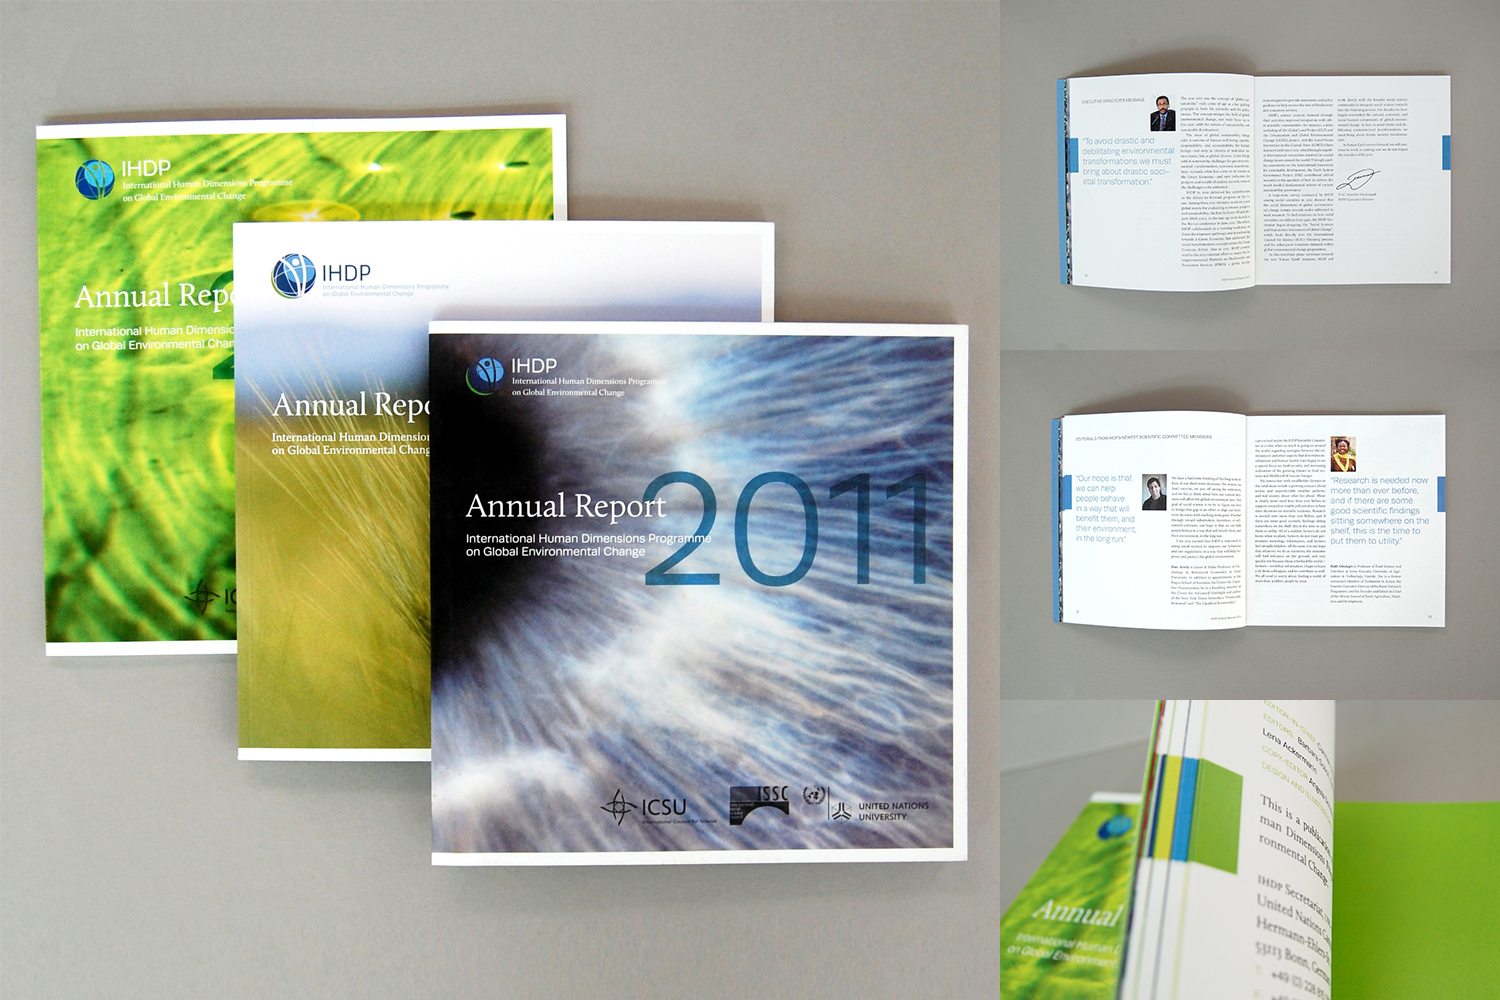 Annual Report Overview.jpg